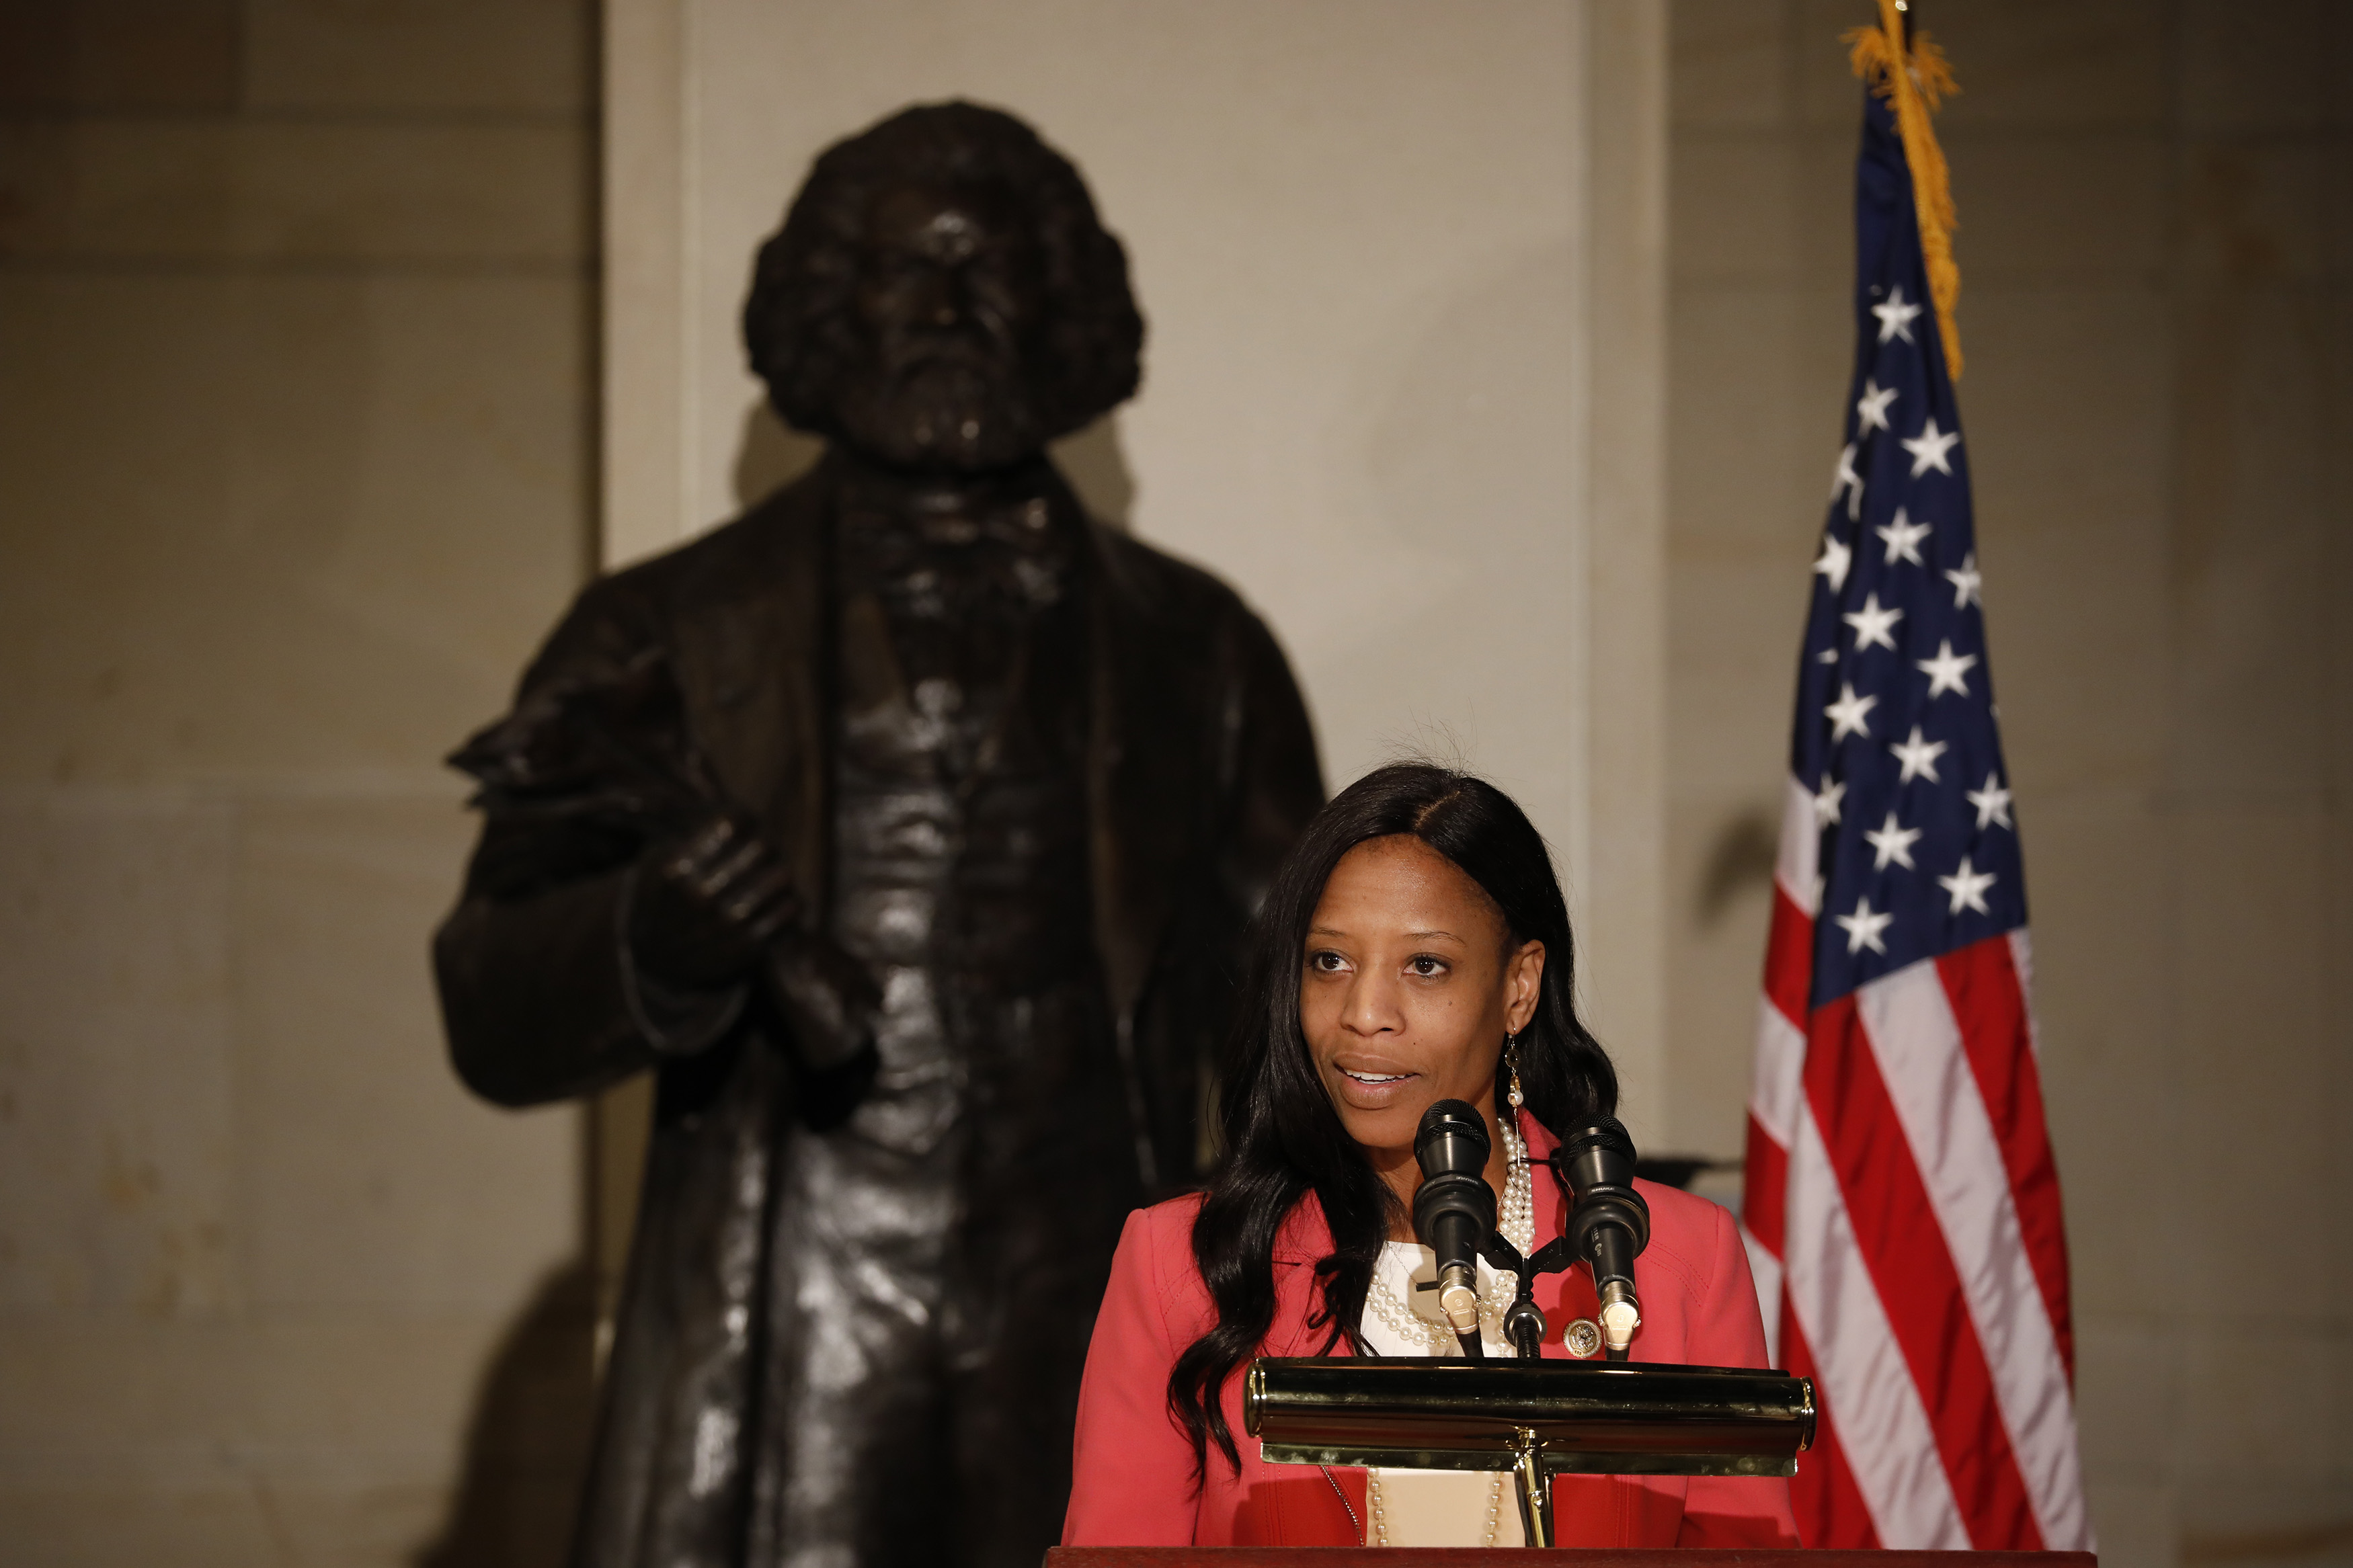 Rep. Mia Love speaks at an event honoring the bicentennial of Frederick Douglass' birth on Capitol Hill on February 14, 2018 in Washington, DC. Aaron P. Bernstein/Getty Images